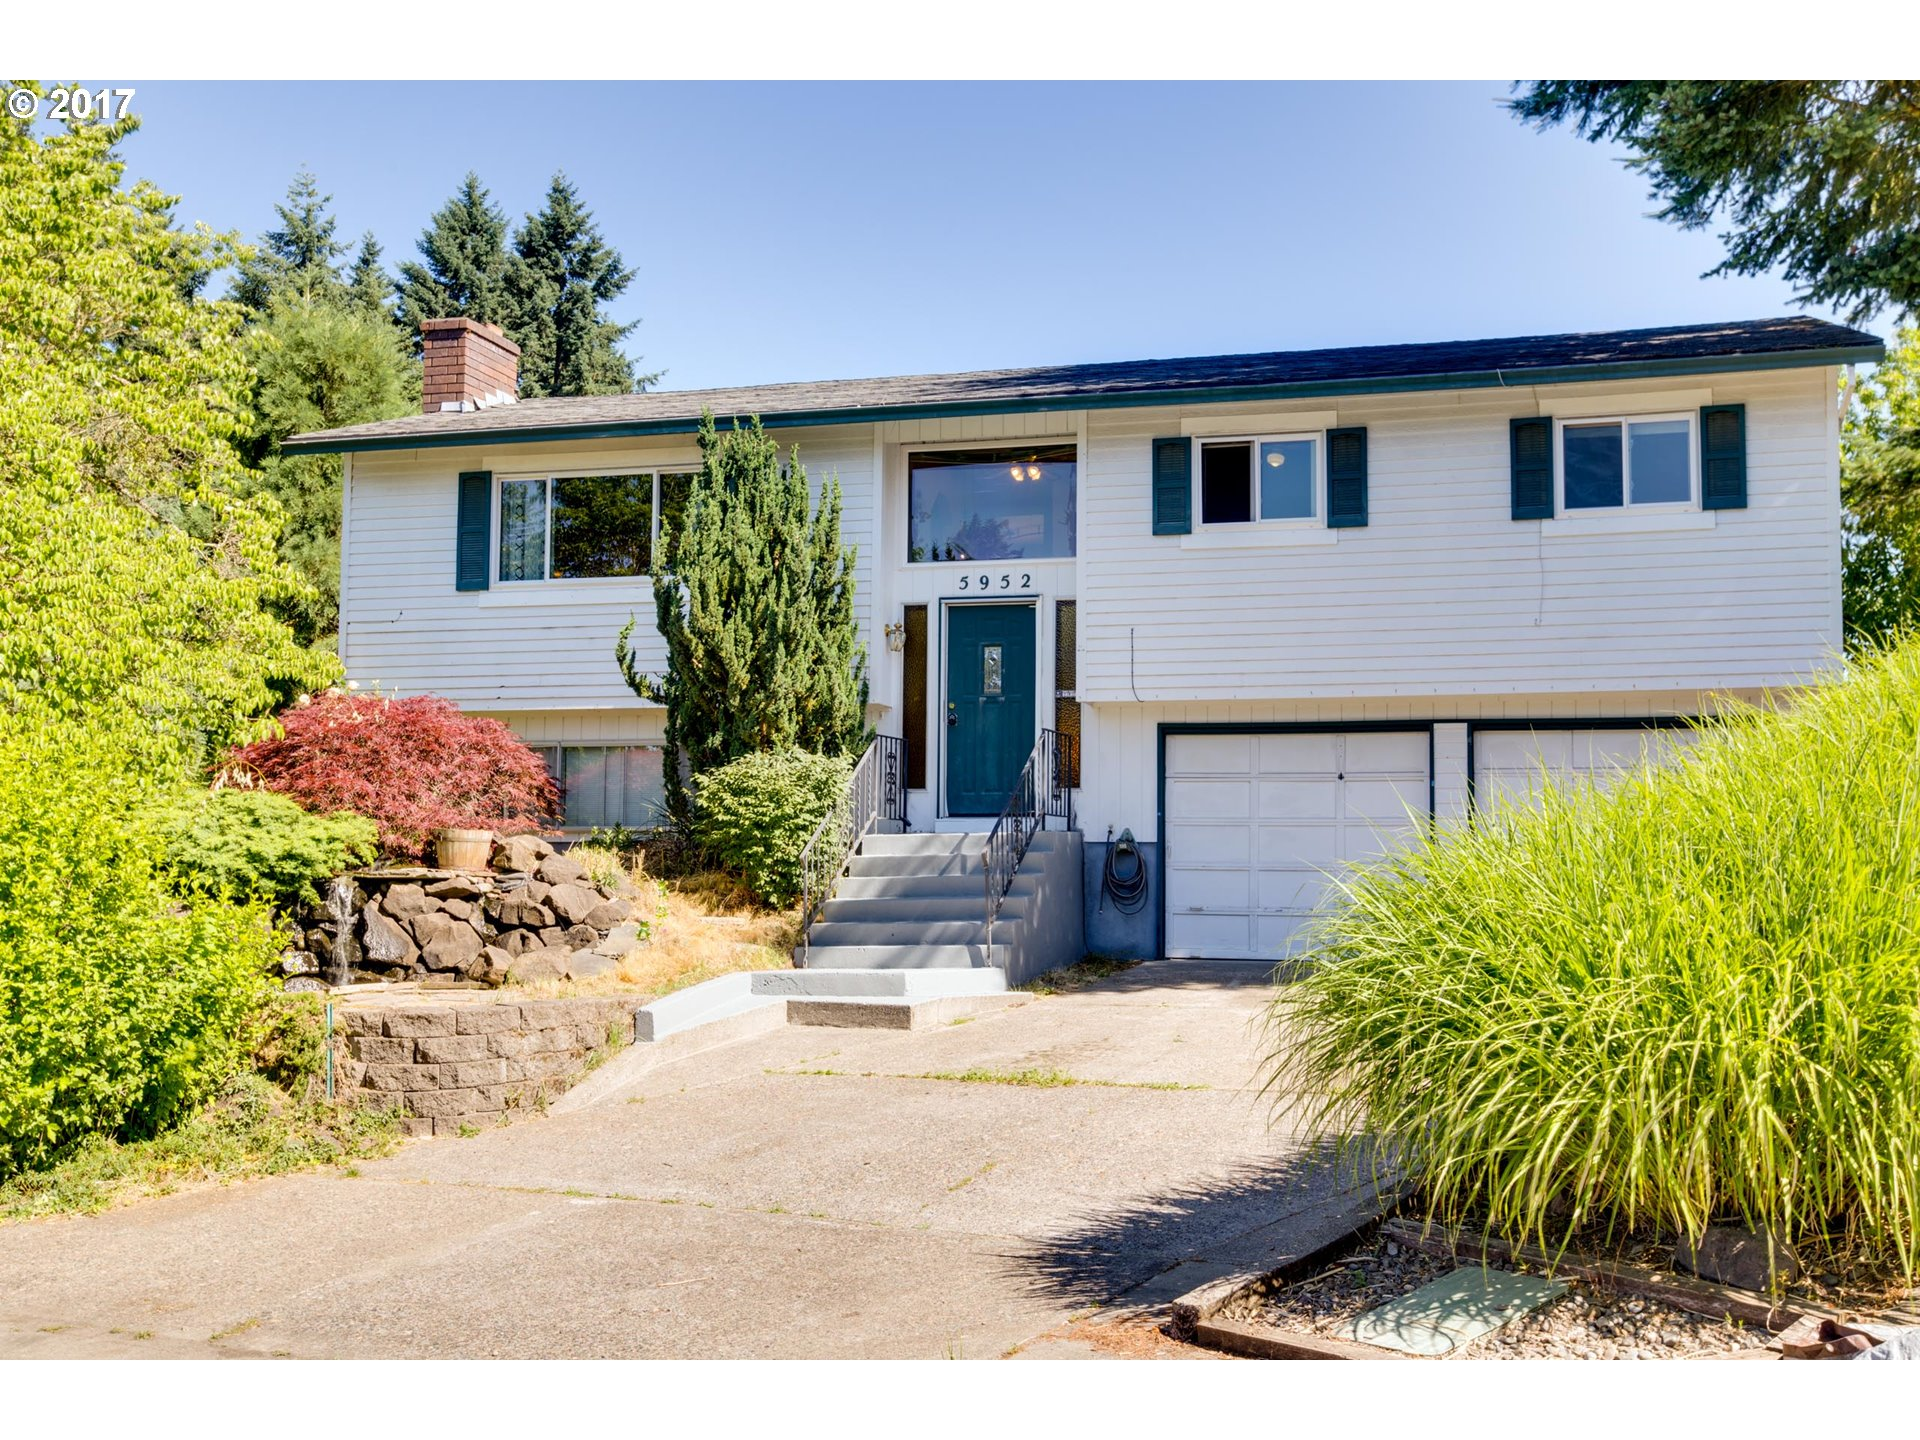 This split level at the end of a cul-de-sac is has easy access to Nike, Intel, Cooper Mountain, Progress Ridge and plenty of shopping. A functional layout with an open concept living room, dining area and kitchen. Some extra features include: lower level bonus room, large deck and yard, flowing fountain in front, large driveway, fenced off dog run, chicken coop, 2 raised beds, fruit trees and matured landscaping. A great neighborhood!